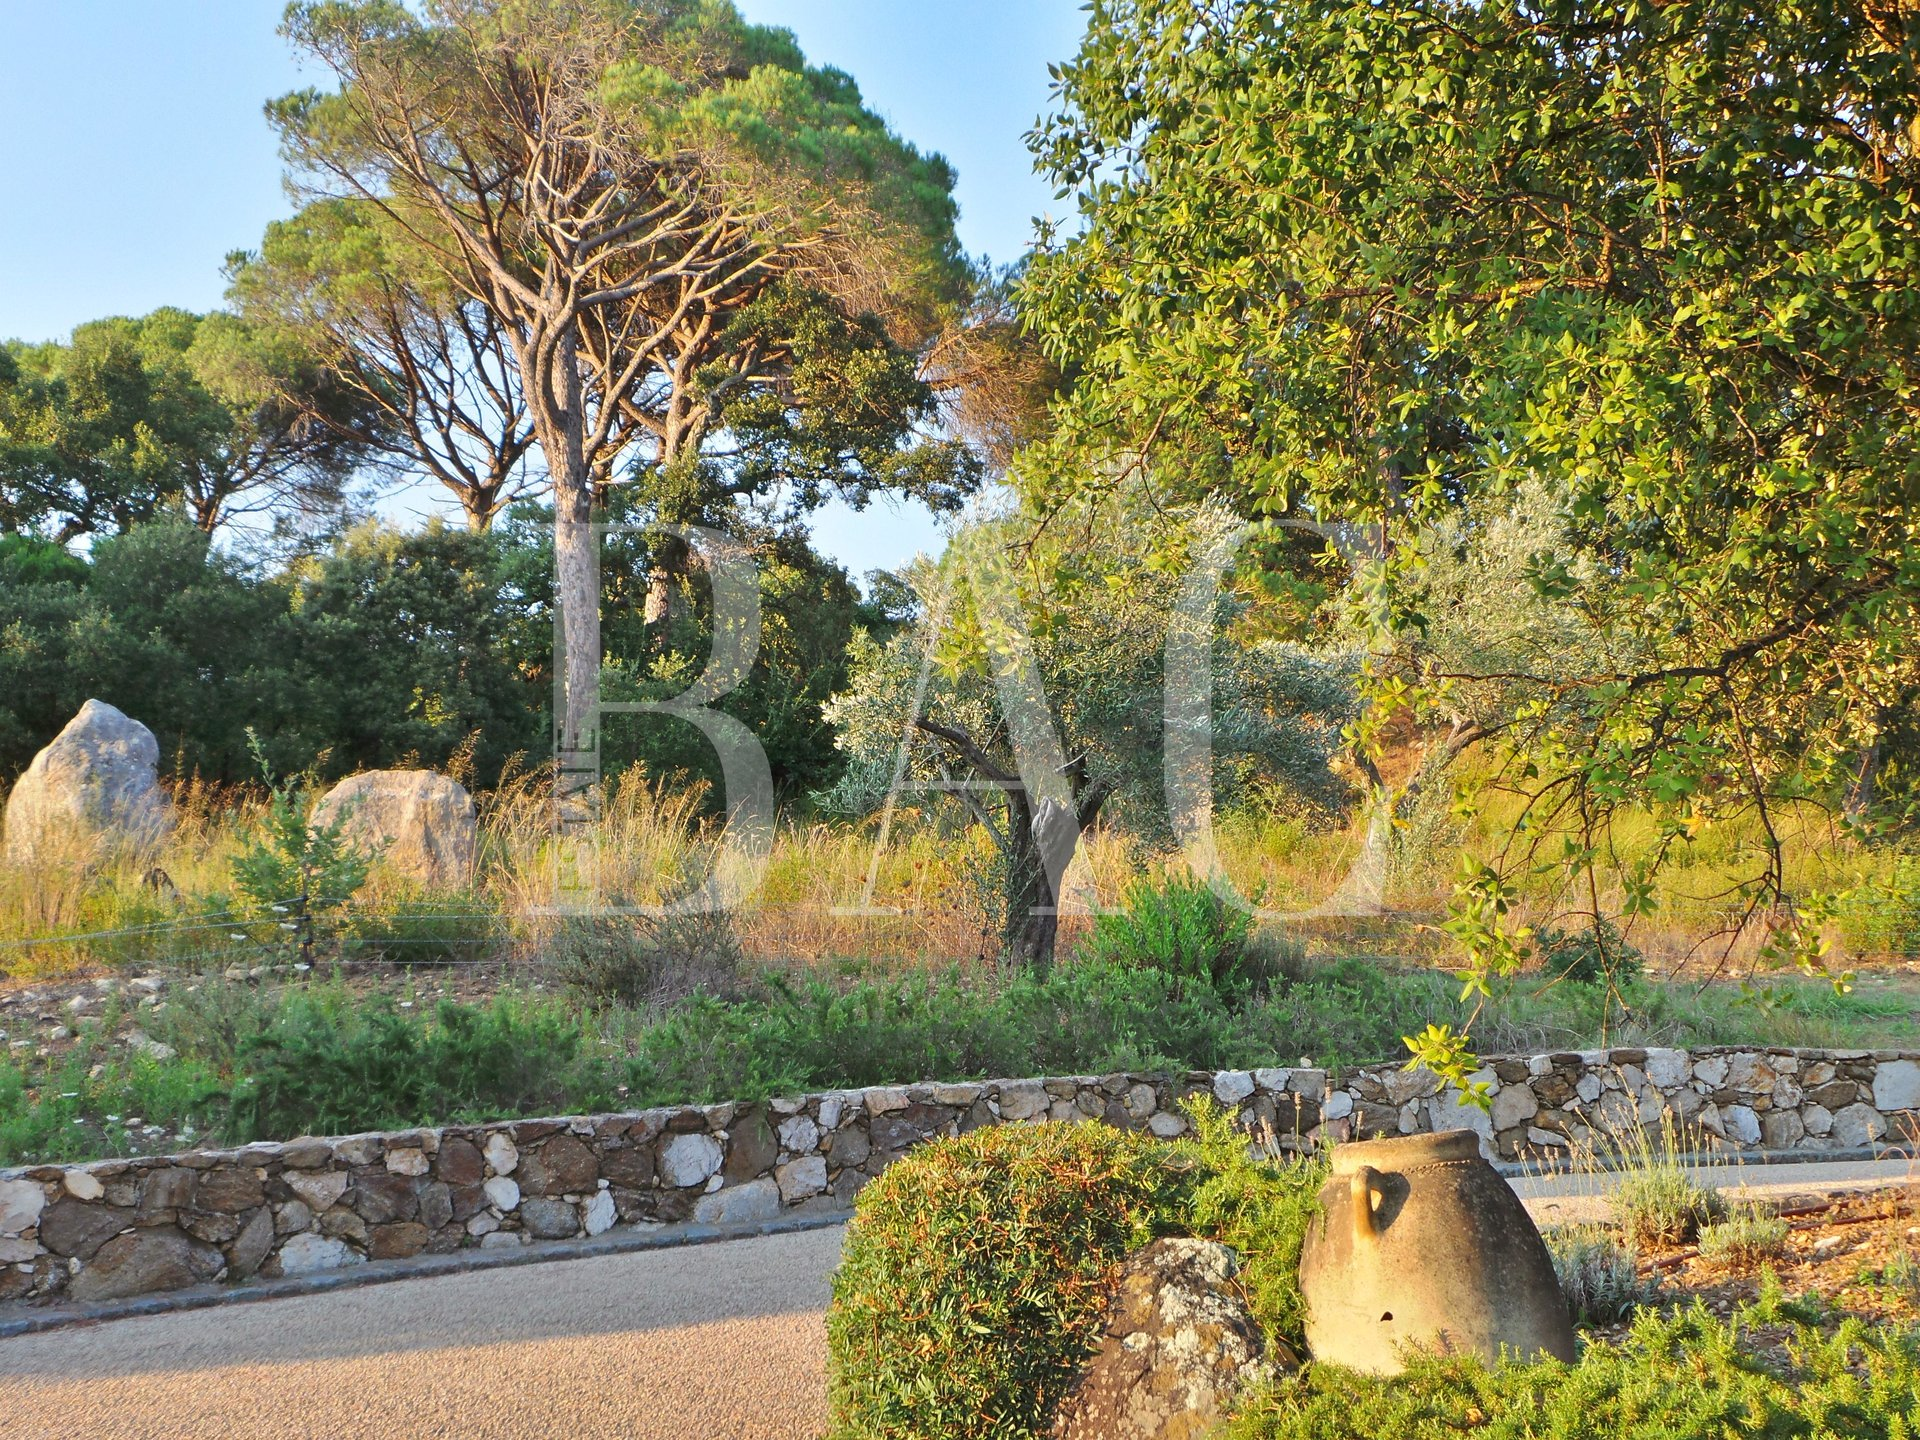 Ramatuelle, a property on 17ha (171.000M2) with more than 700 olive trees